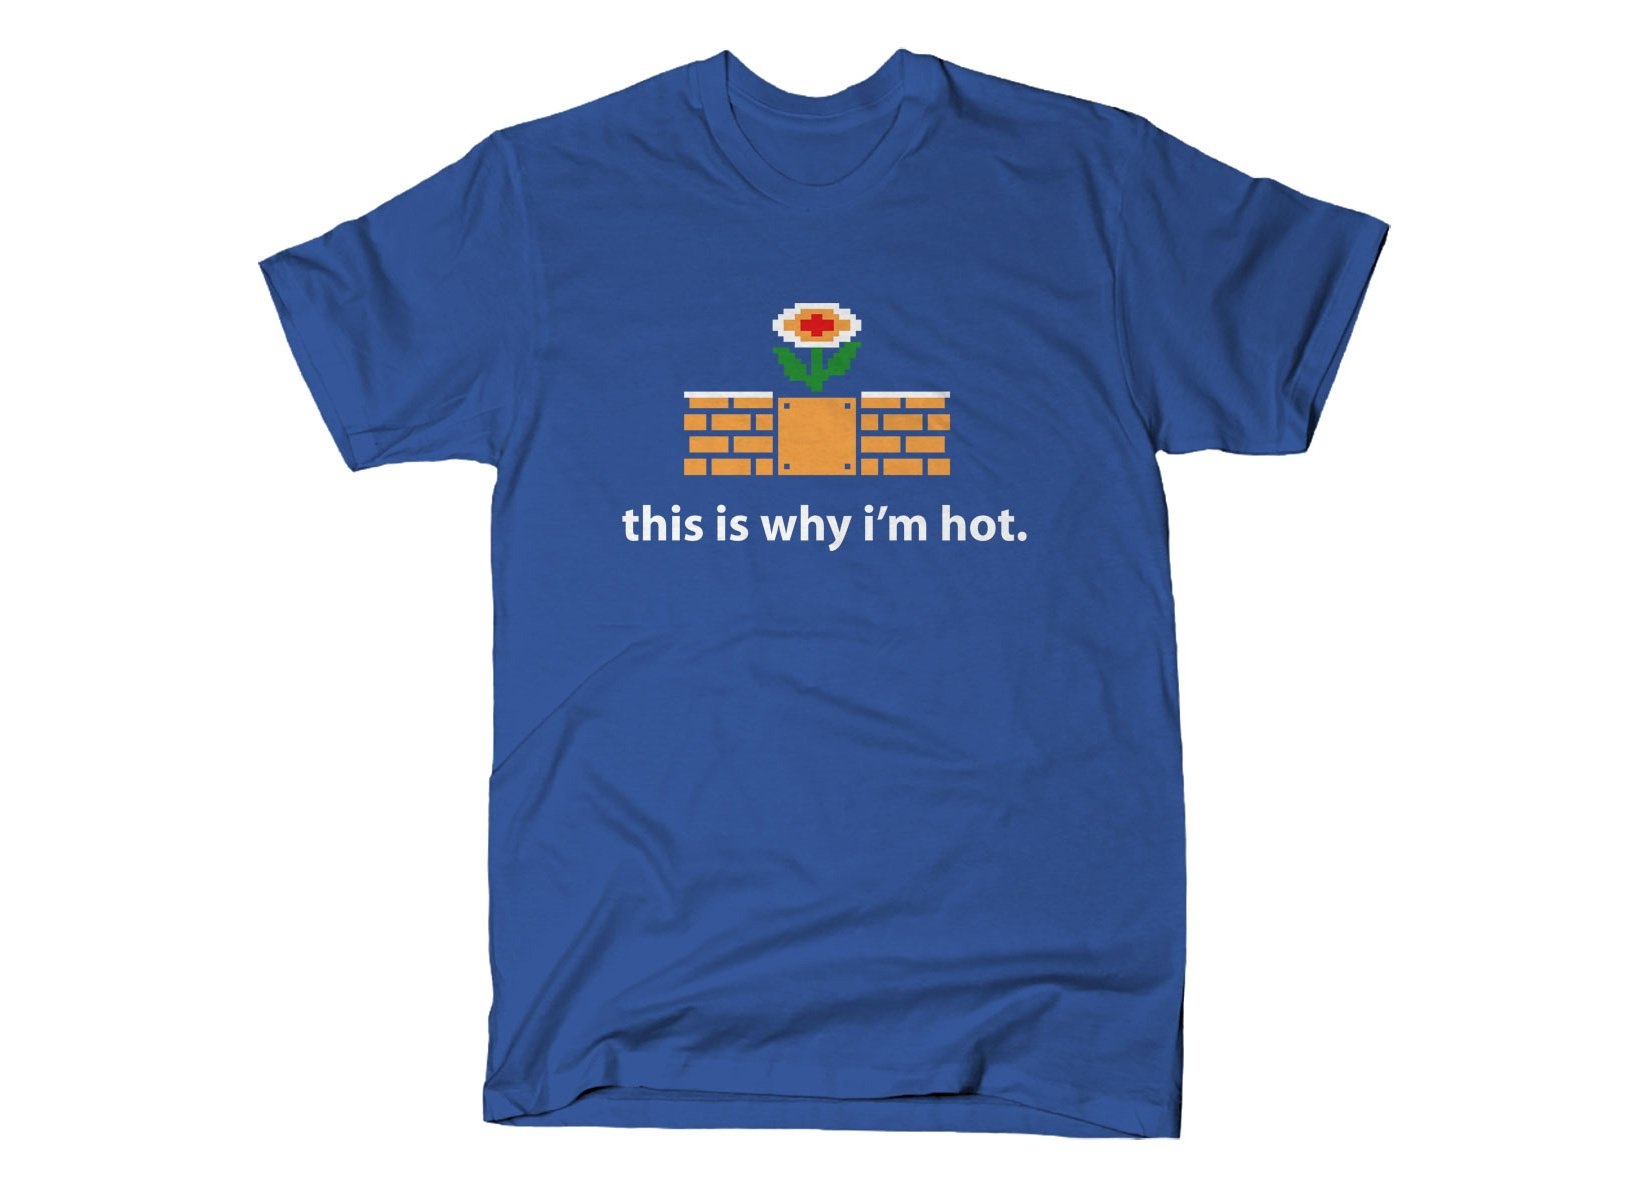 This is Why I'm Hot on Mens T-Shirt